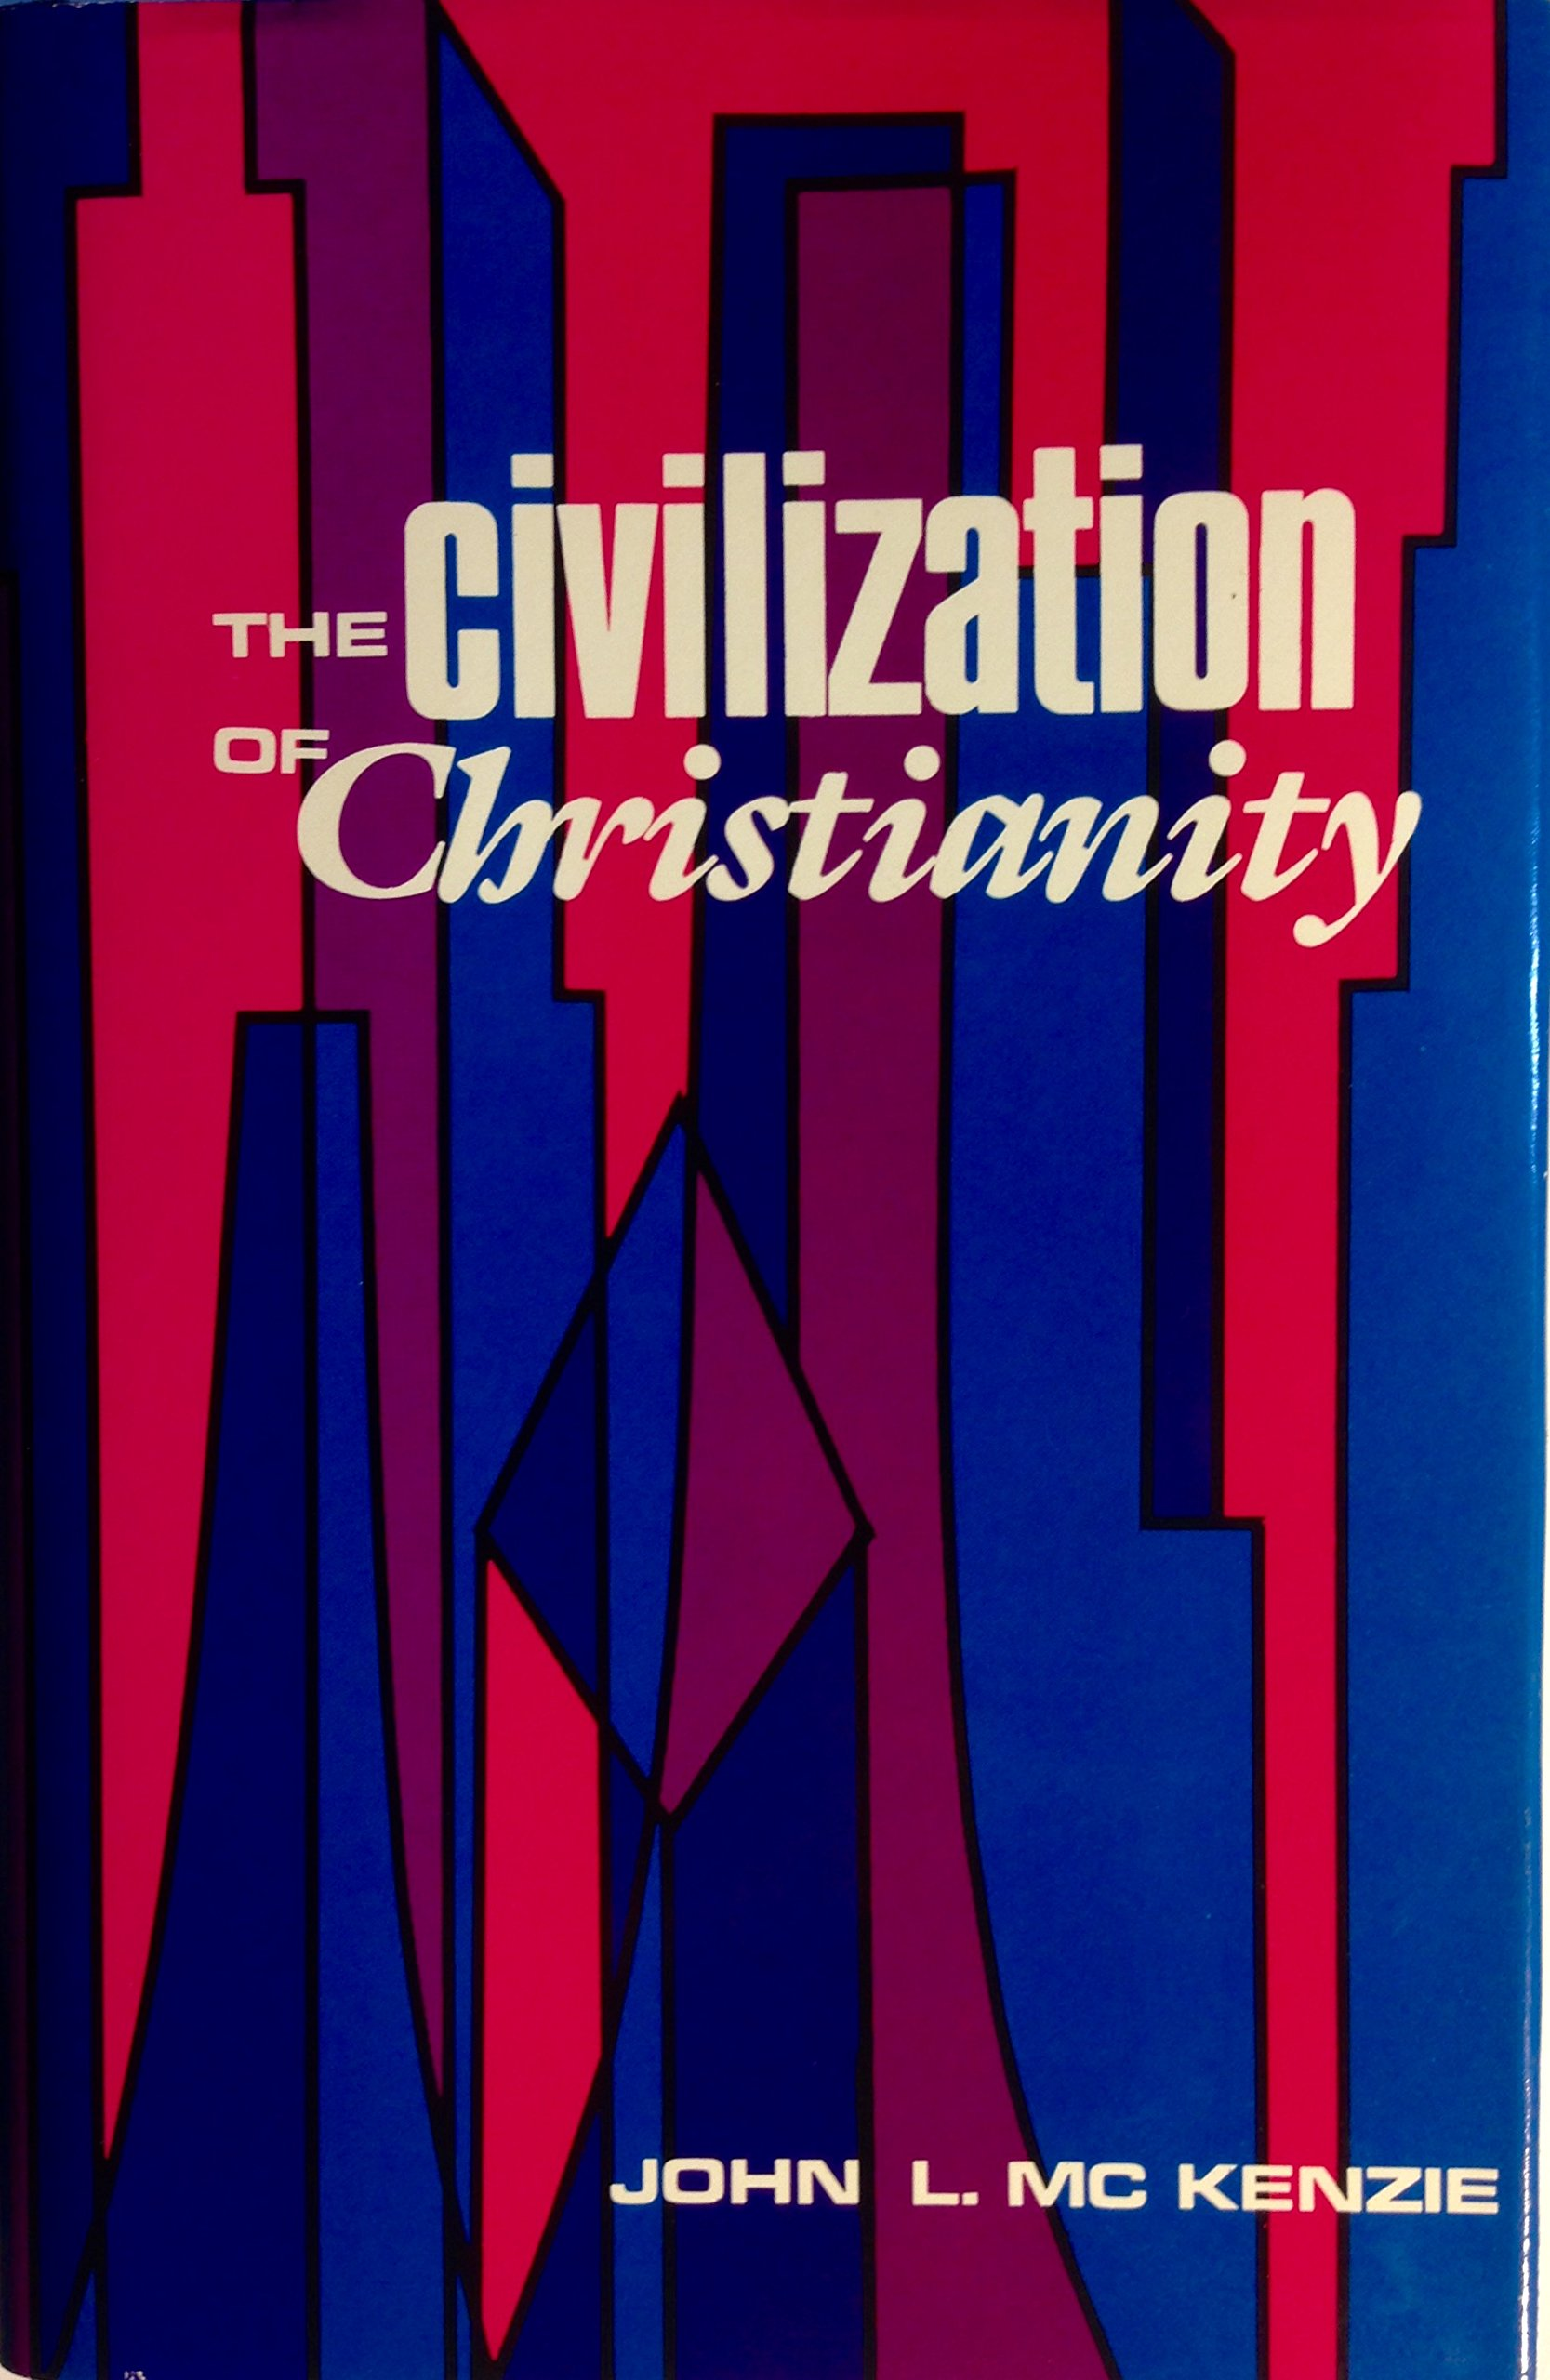 The civilization of Christianity pdf